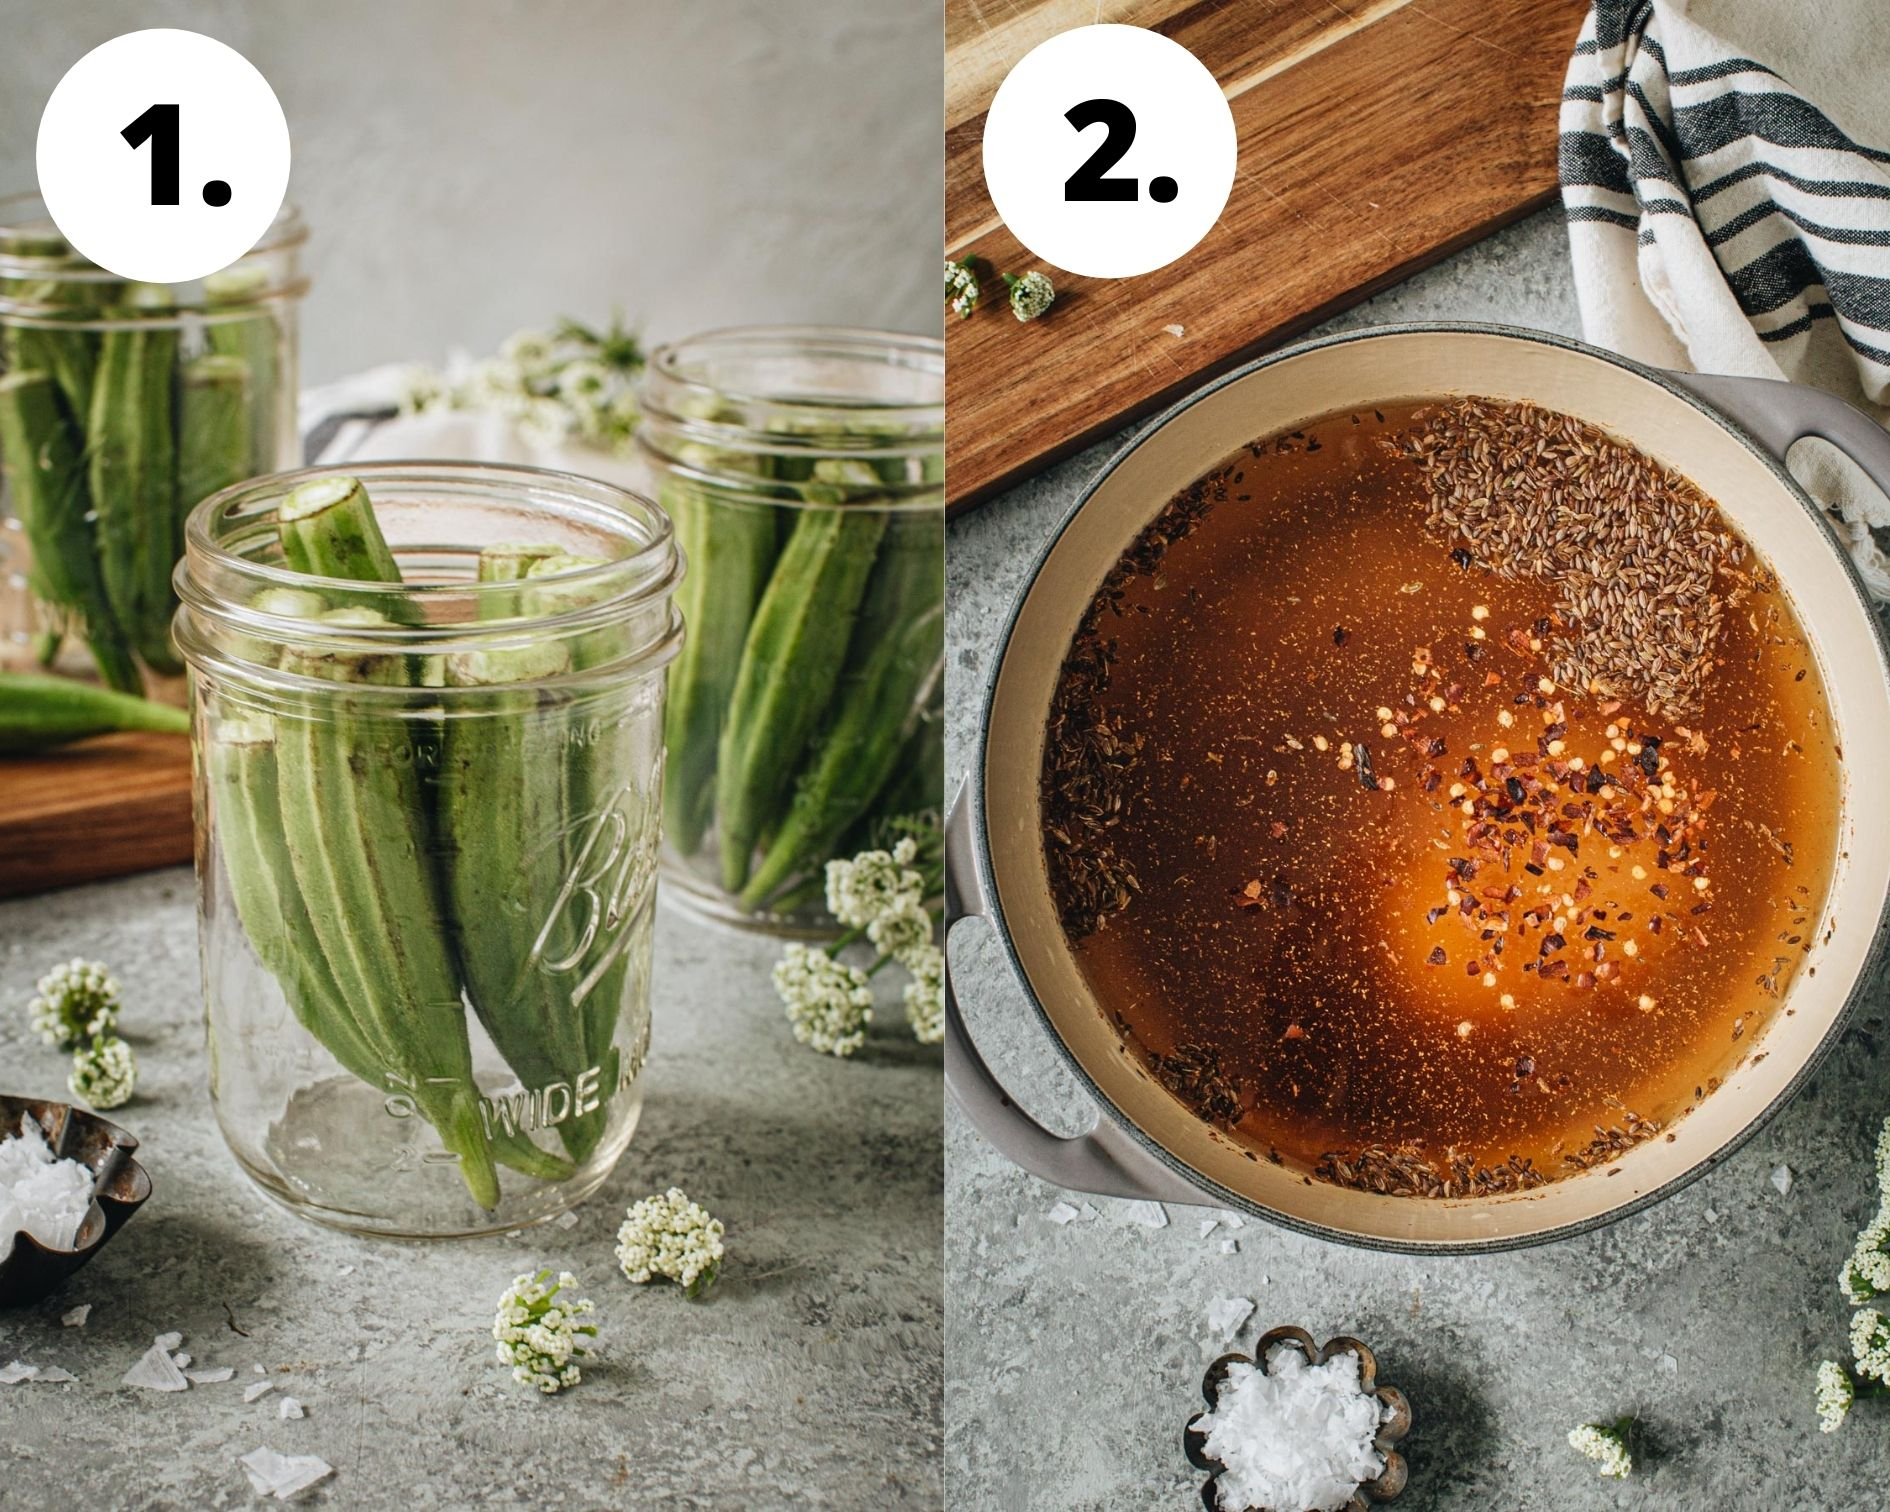 Pickled okra process steps 1 and 2.